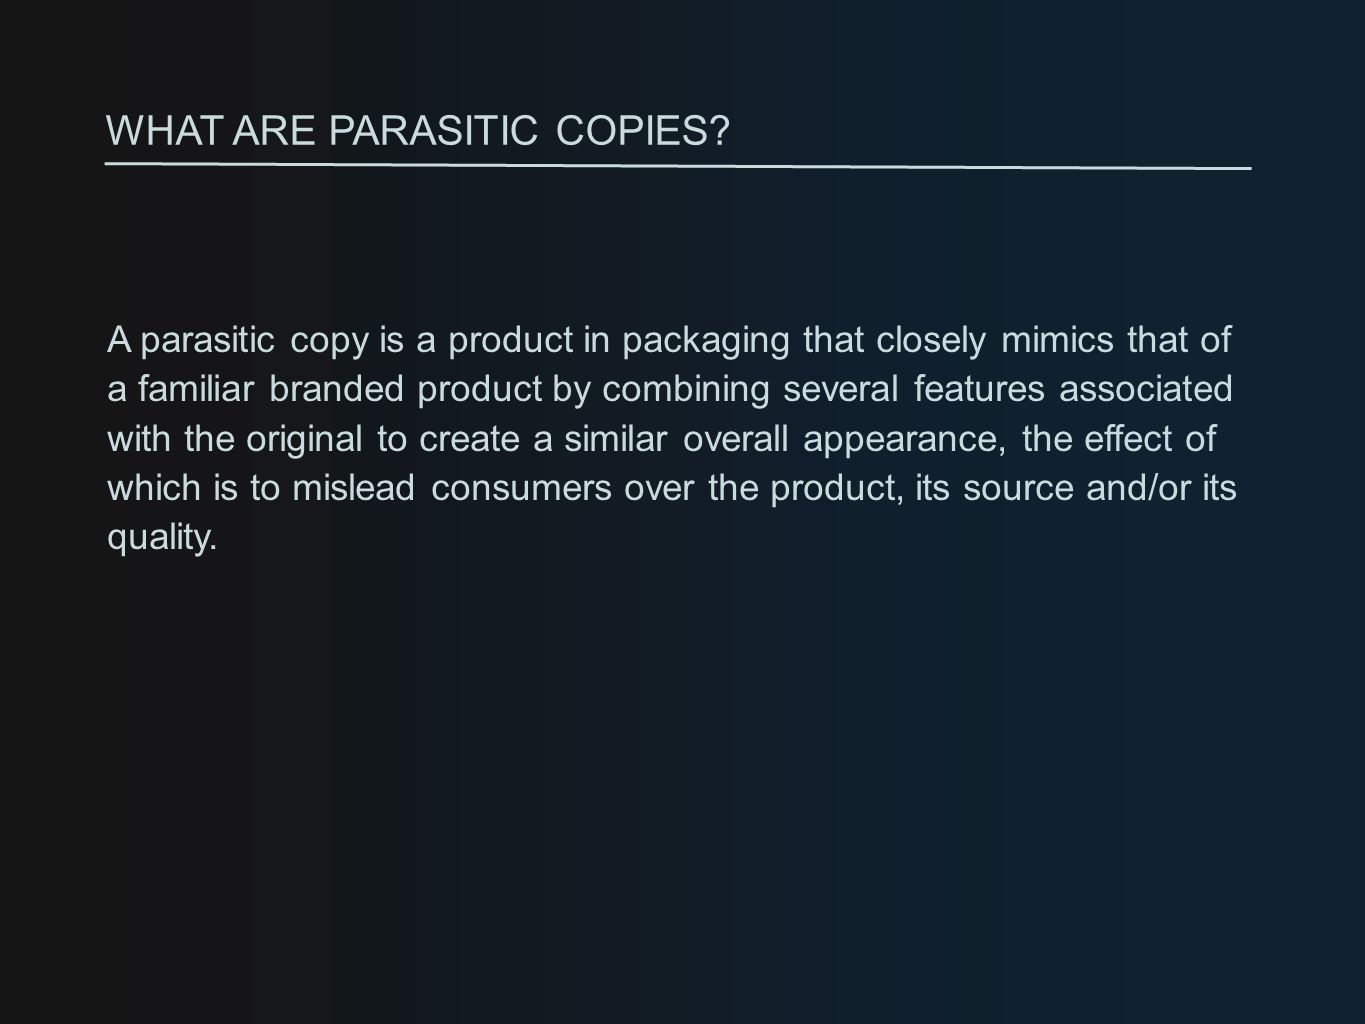 SO HOW & WHY DO PARASITIC COPIES WORK?